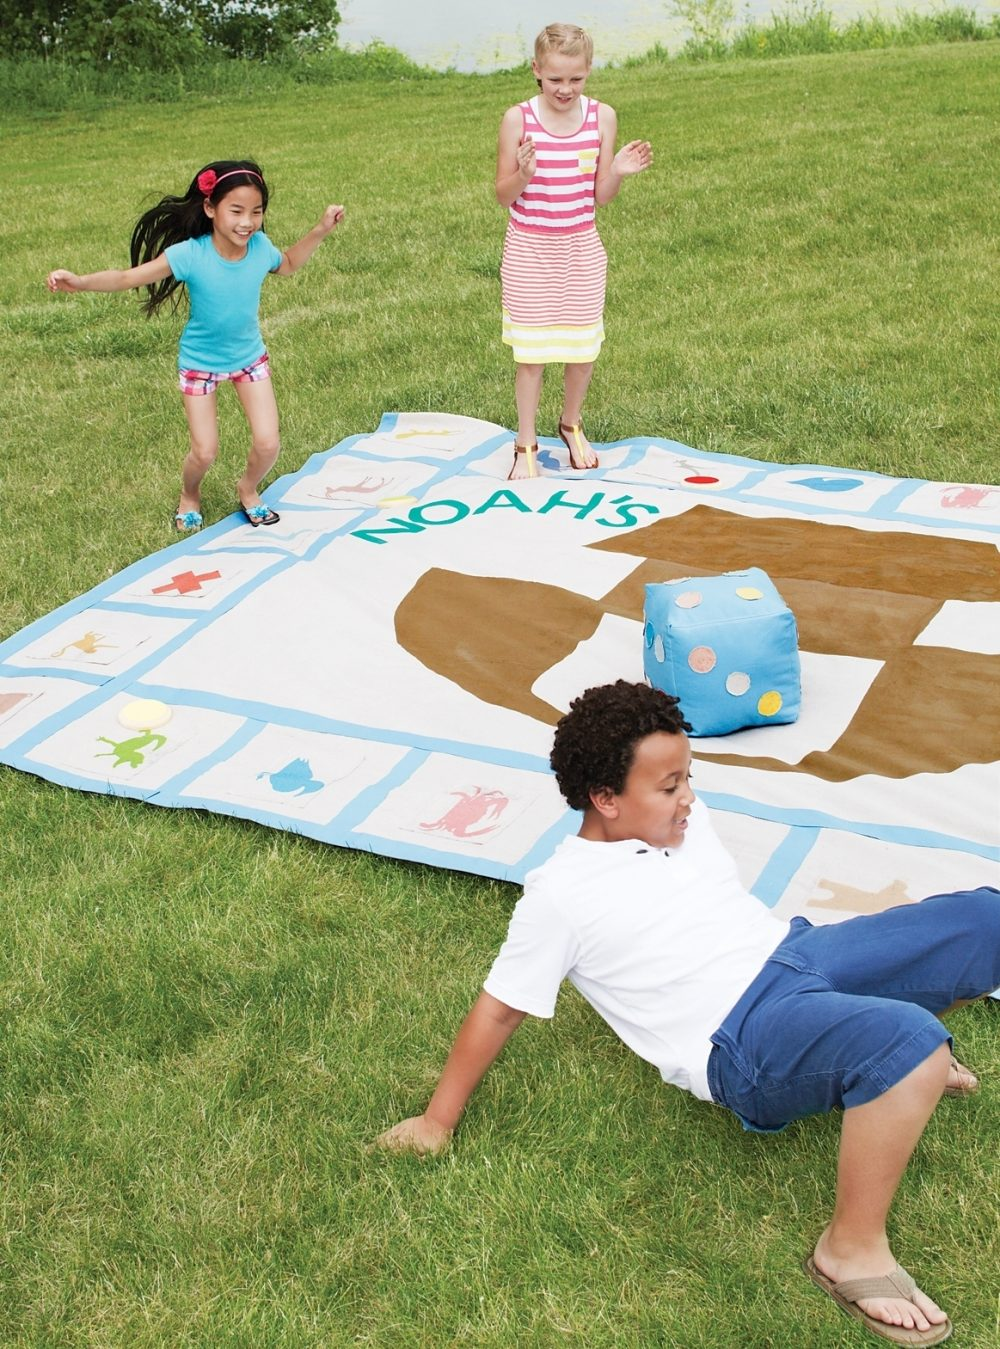 Children imitate animals during a game of Noah's 2-By-2 on a lawn.